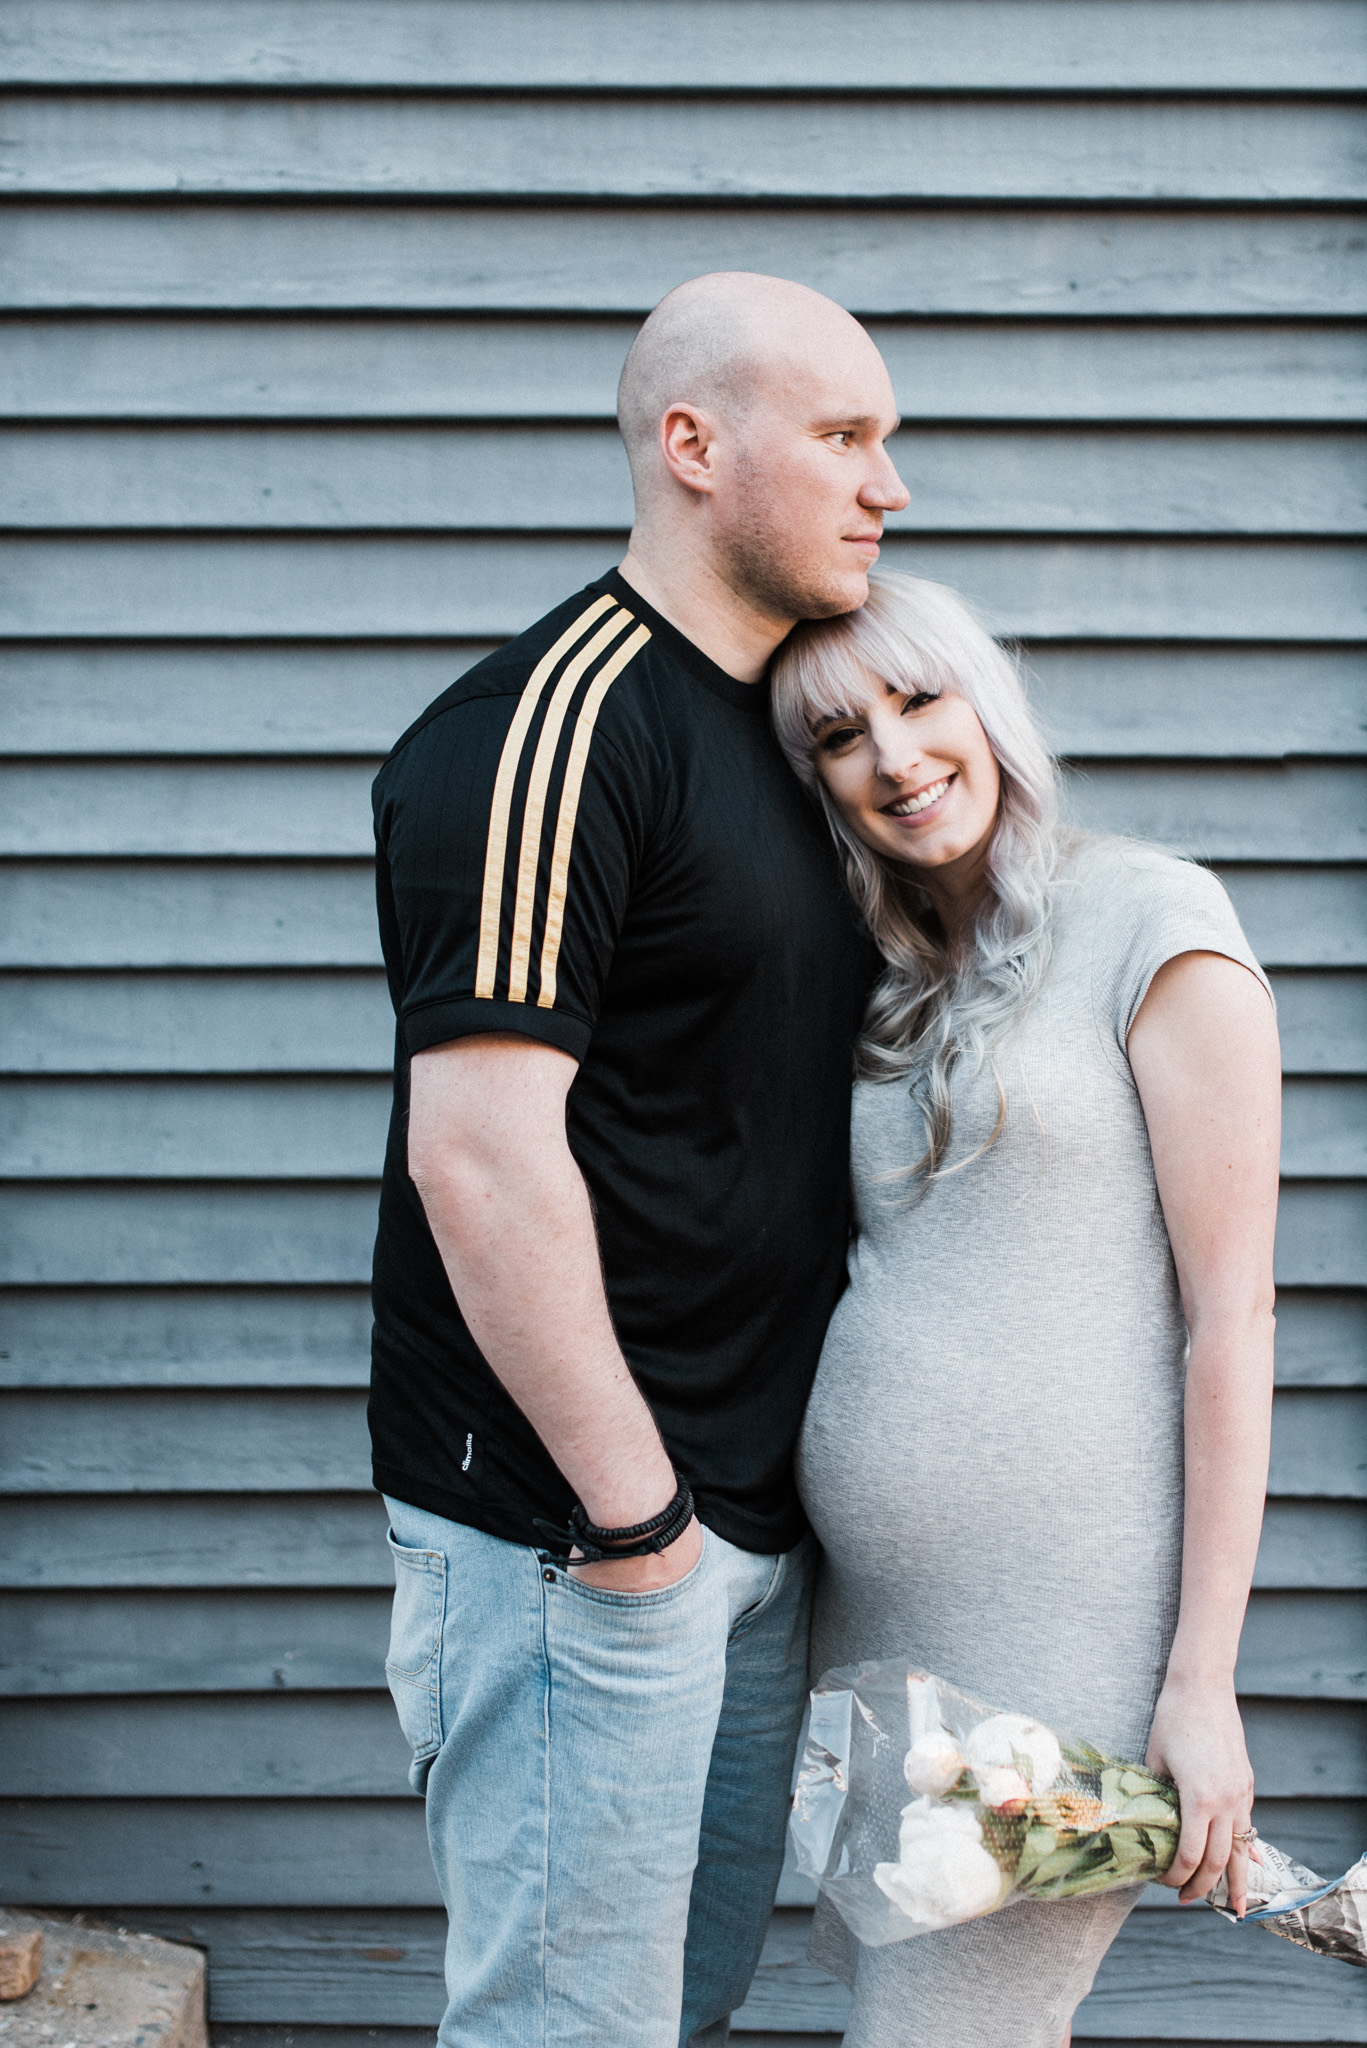 Lifestyle Maternity Session of pregnant couple in downtown Park City, UT by Idaho Lifestyle photographer Whitney Majors Photography